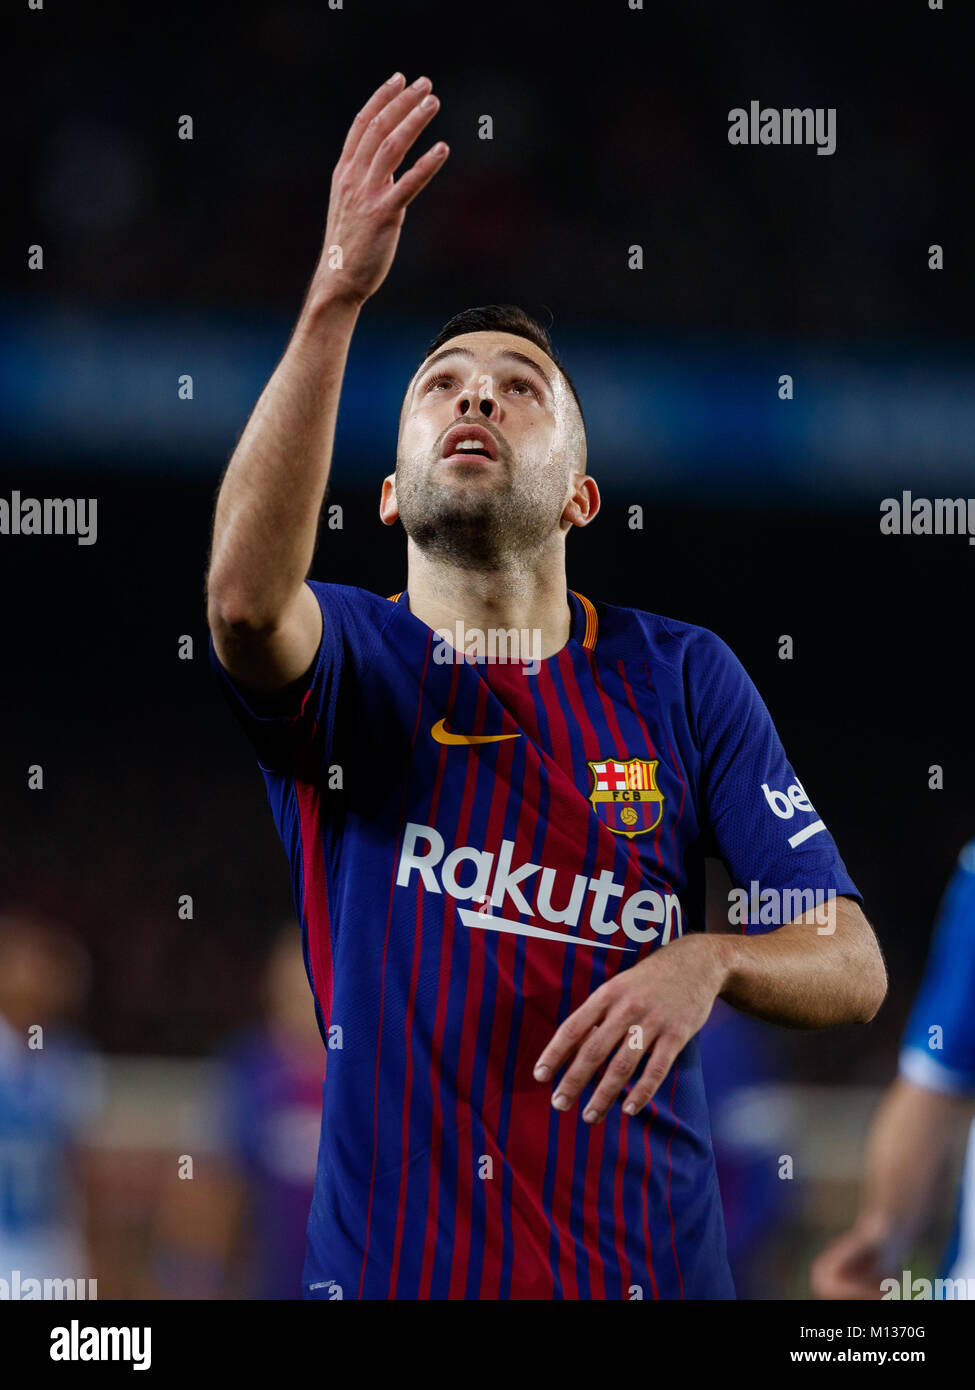 Barcelona, Spain. 25th January, 2018.  Copa del Rey football, quarter final, second leg, Barcelona versus Espanyol; - Stock Image